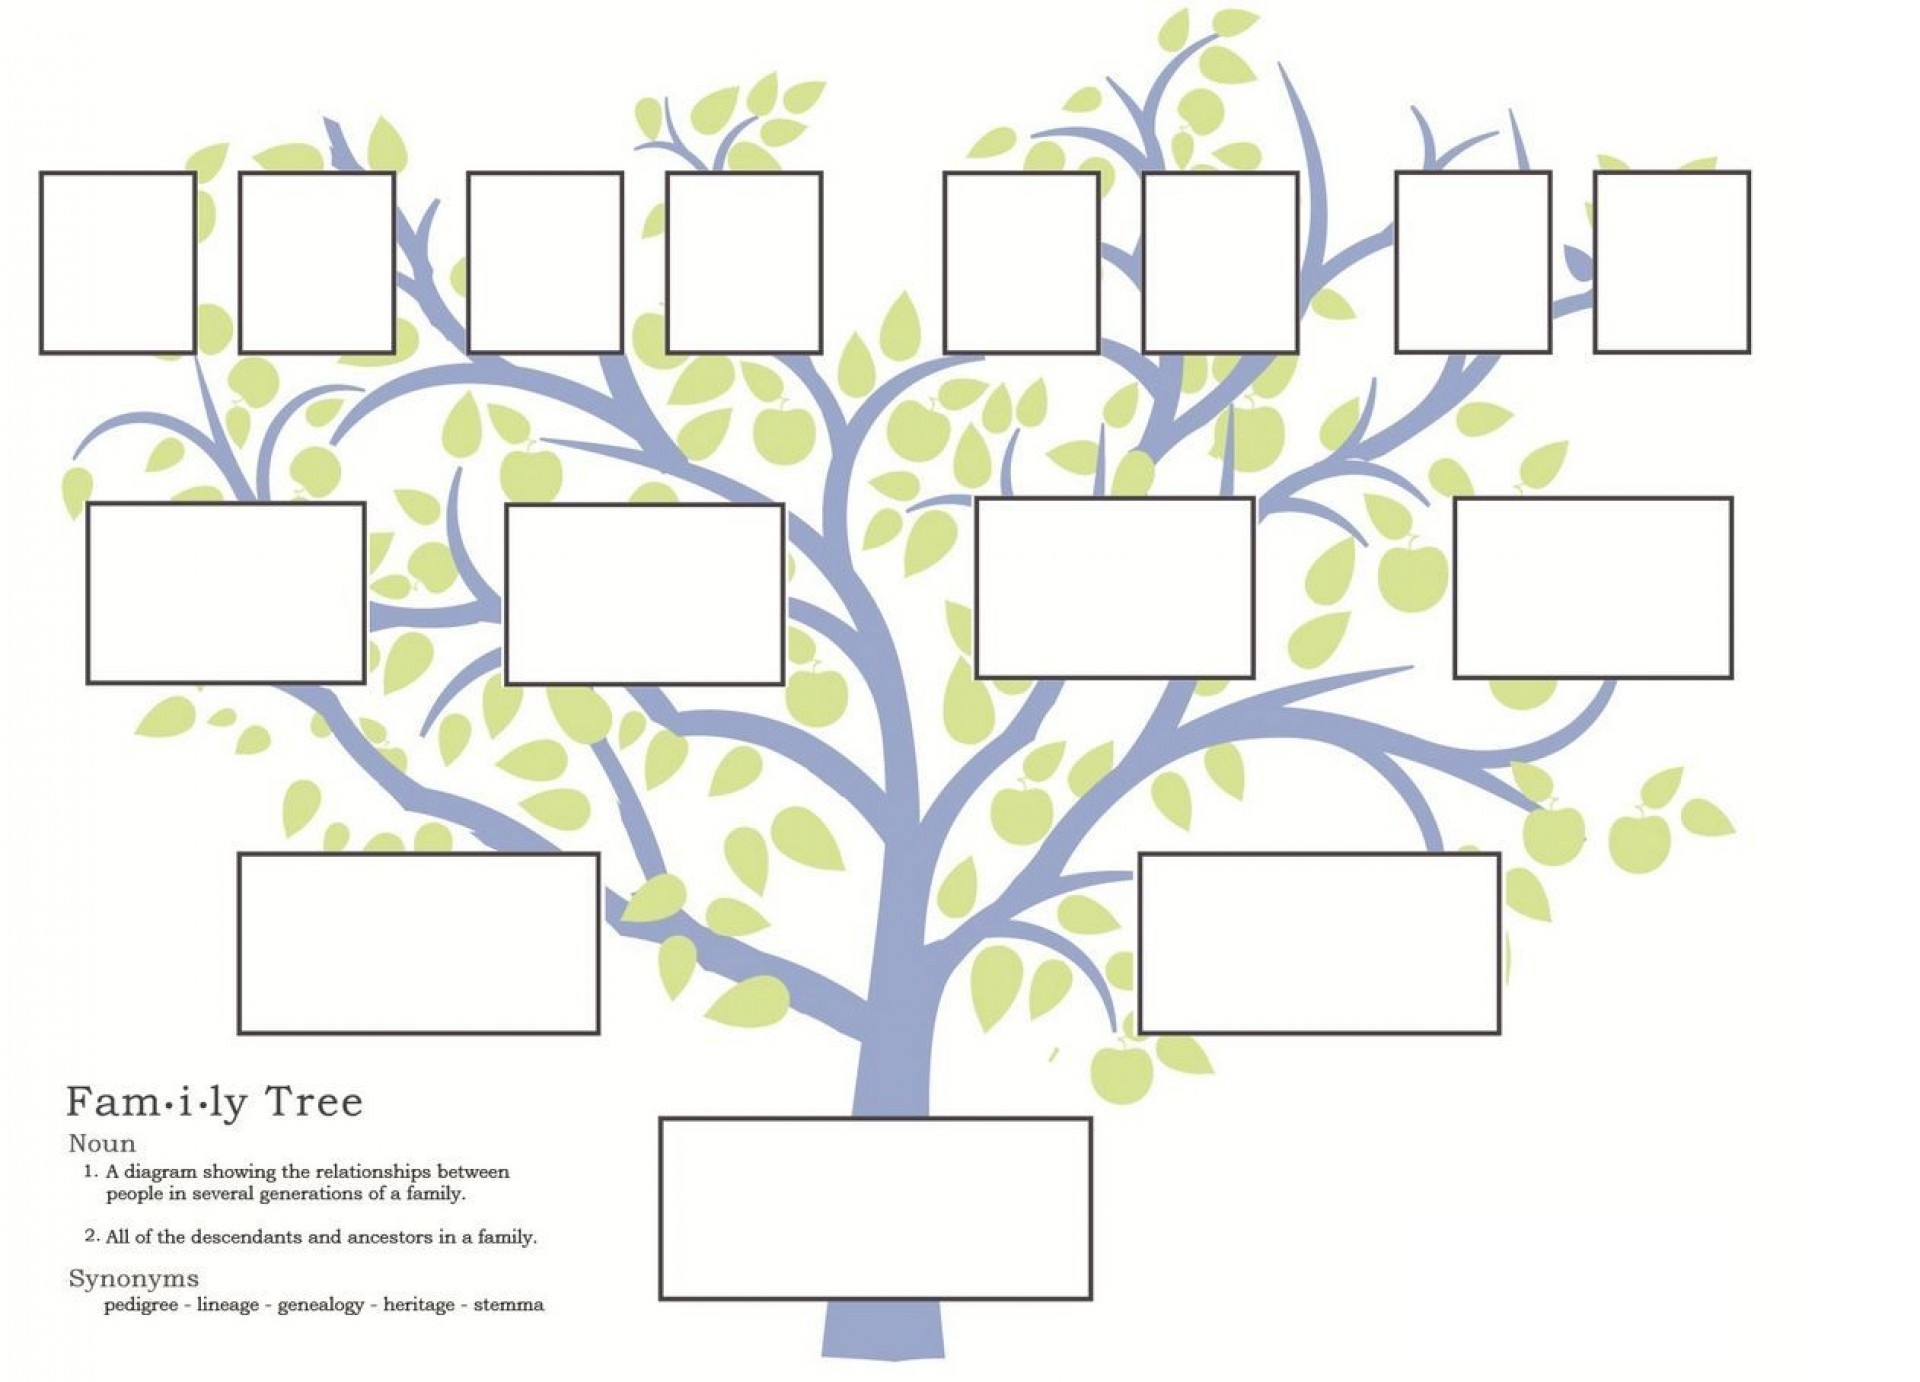 003 Family Tree Template Maker Wonderful Ideas Templates Free - Family Tree Maker Free Printable